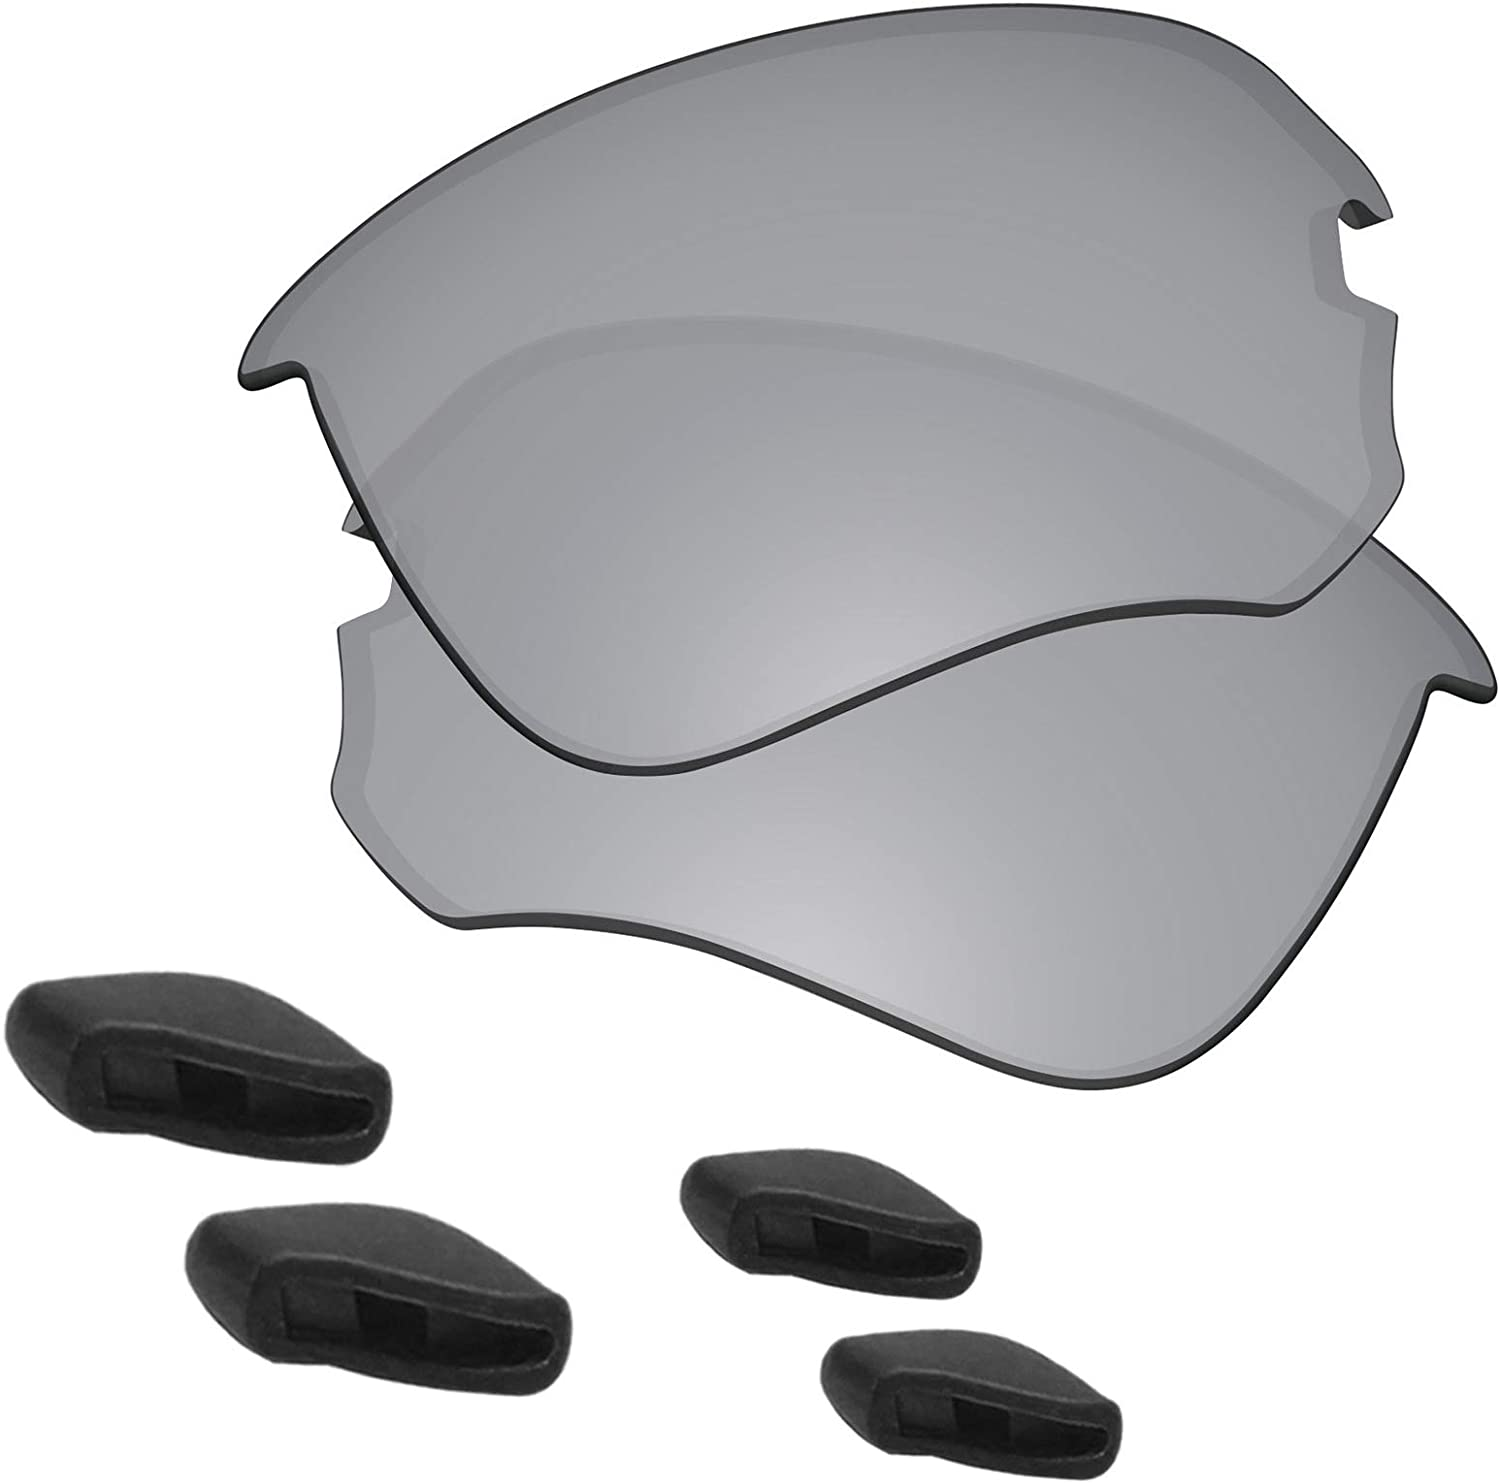 store Predrox Flak Draft Lenses Max 75% OFF Nose for S Oakley Pieces Replacement